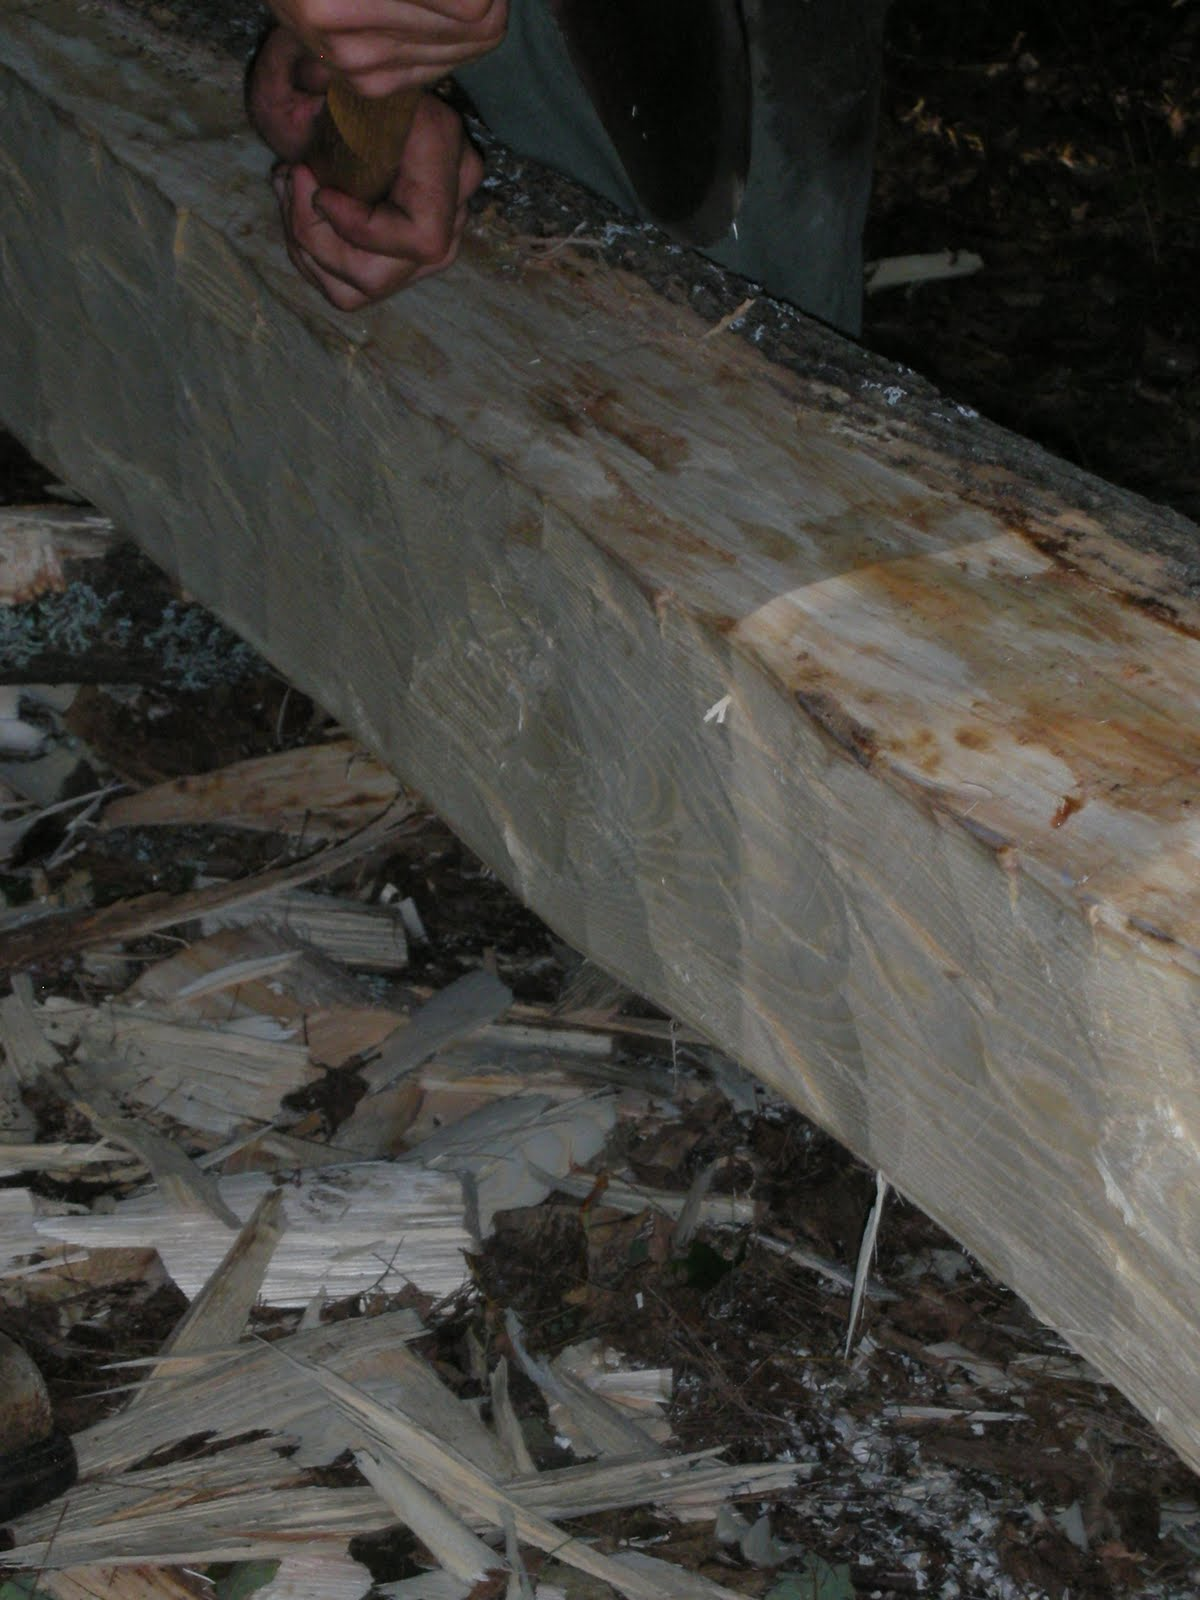 An Ash log is hewn flat on one side to become a floor joist.